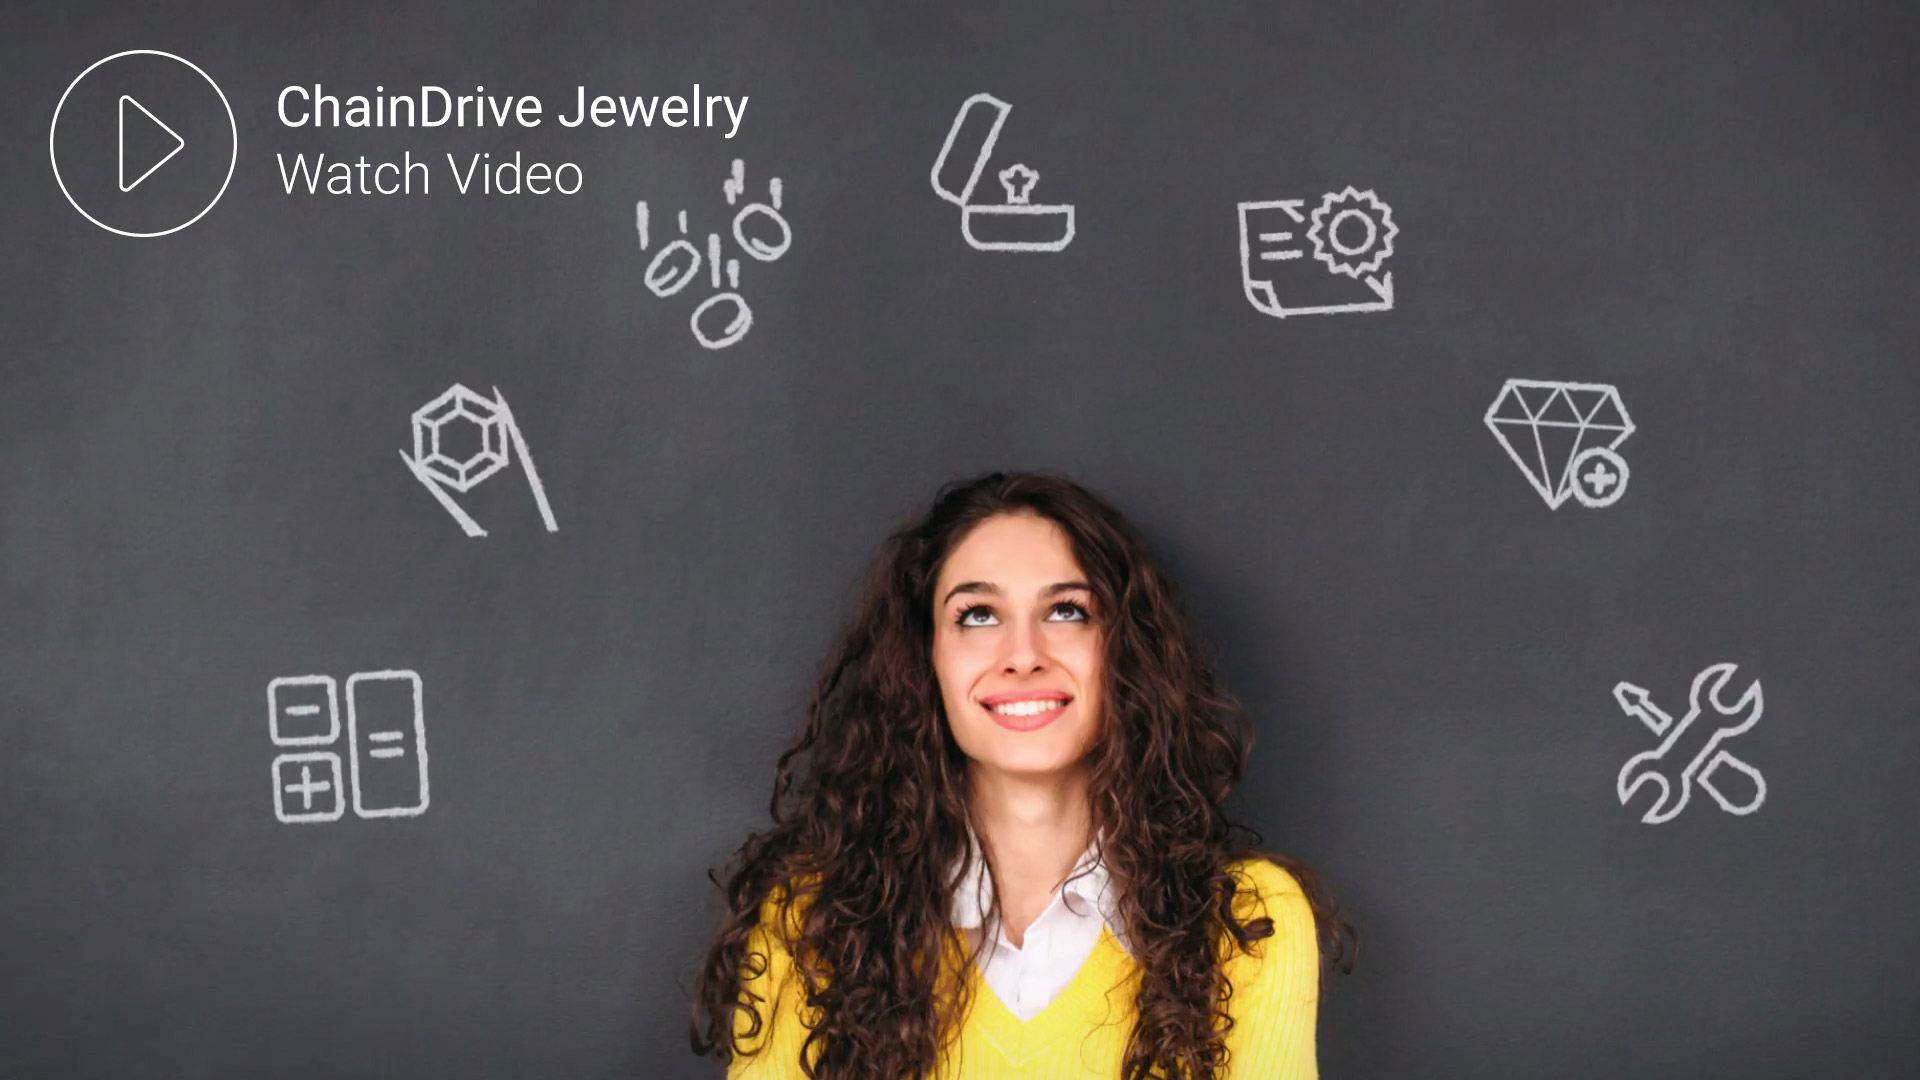 Retail Recources - ChainDrive Jewelry Video